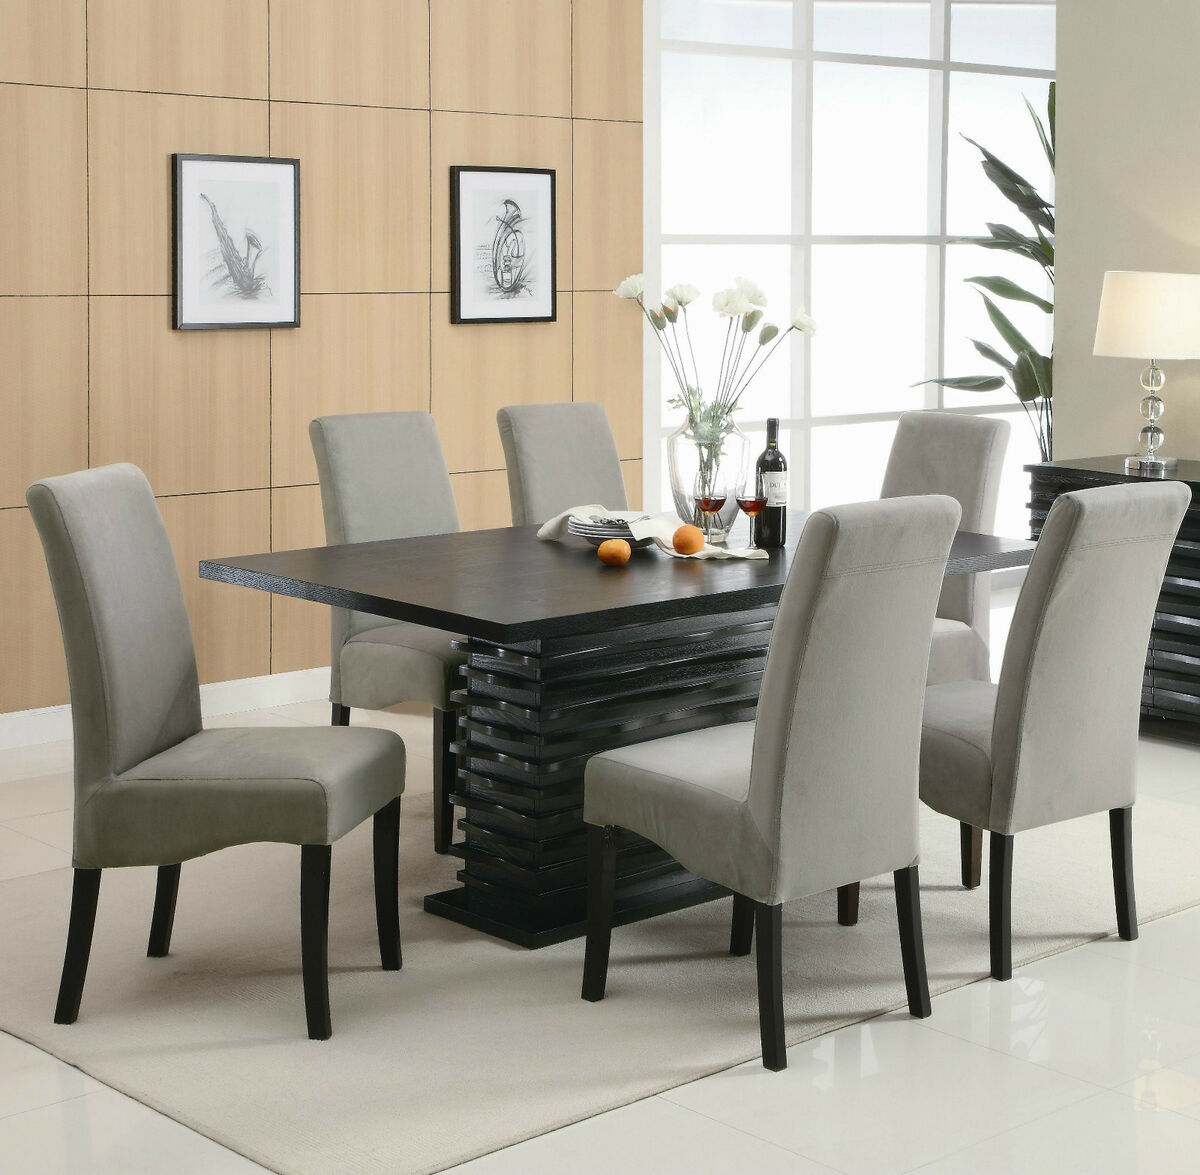 Dining table furniture contemporary dining table chairs for Breakfast sets furniture